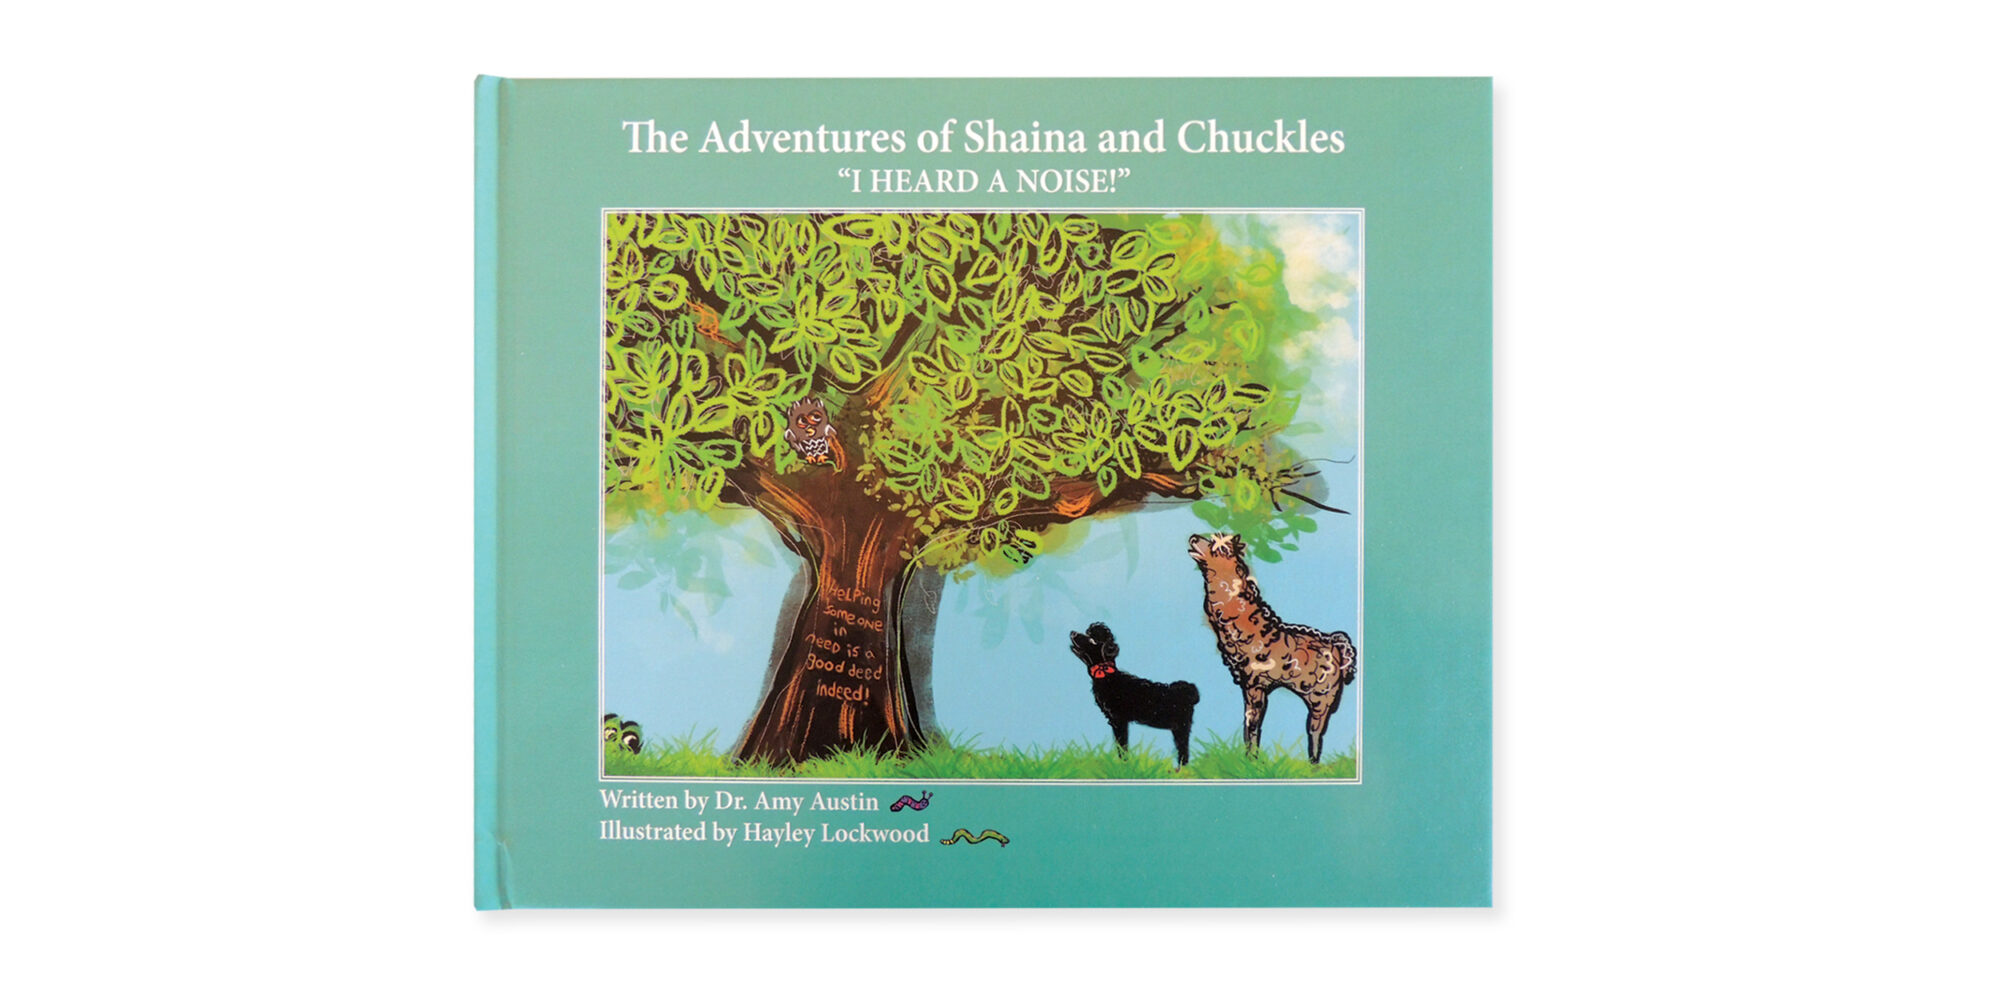 The Adventures of Shiana and Chuckles